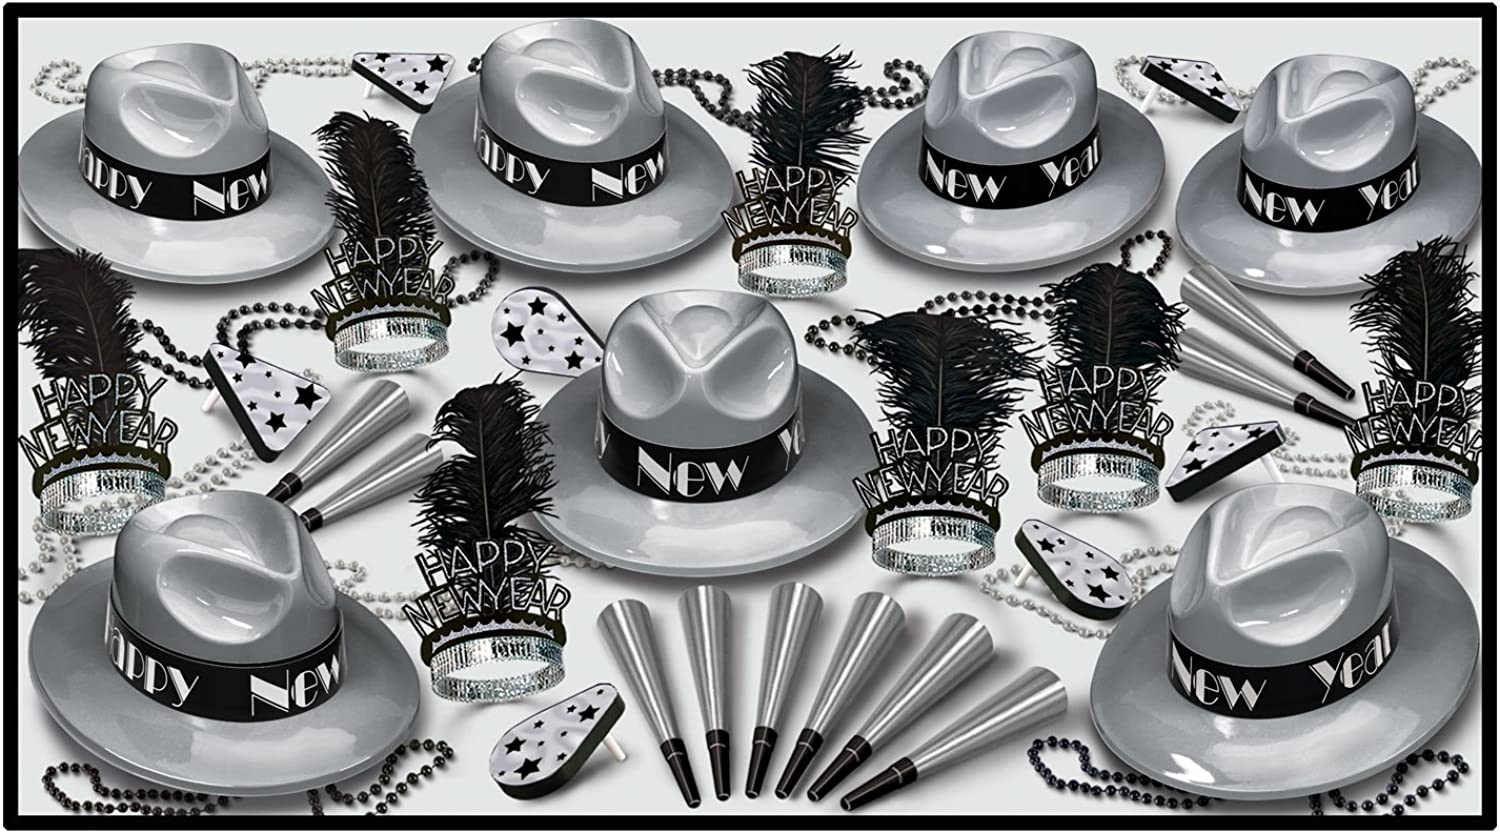 Beistle Silver Swing Party Favors, Assortment For 50